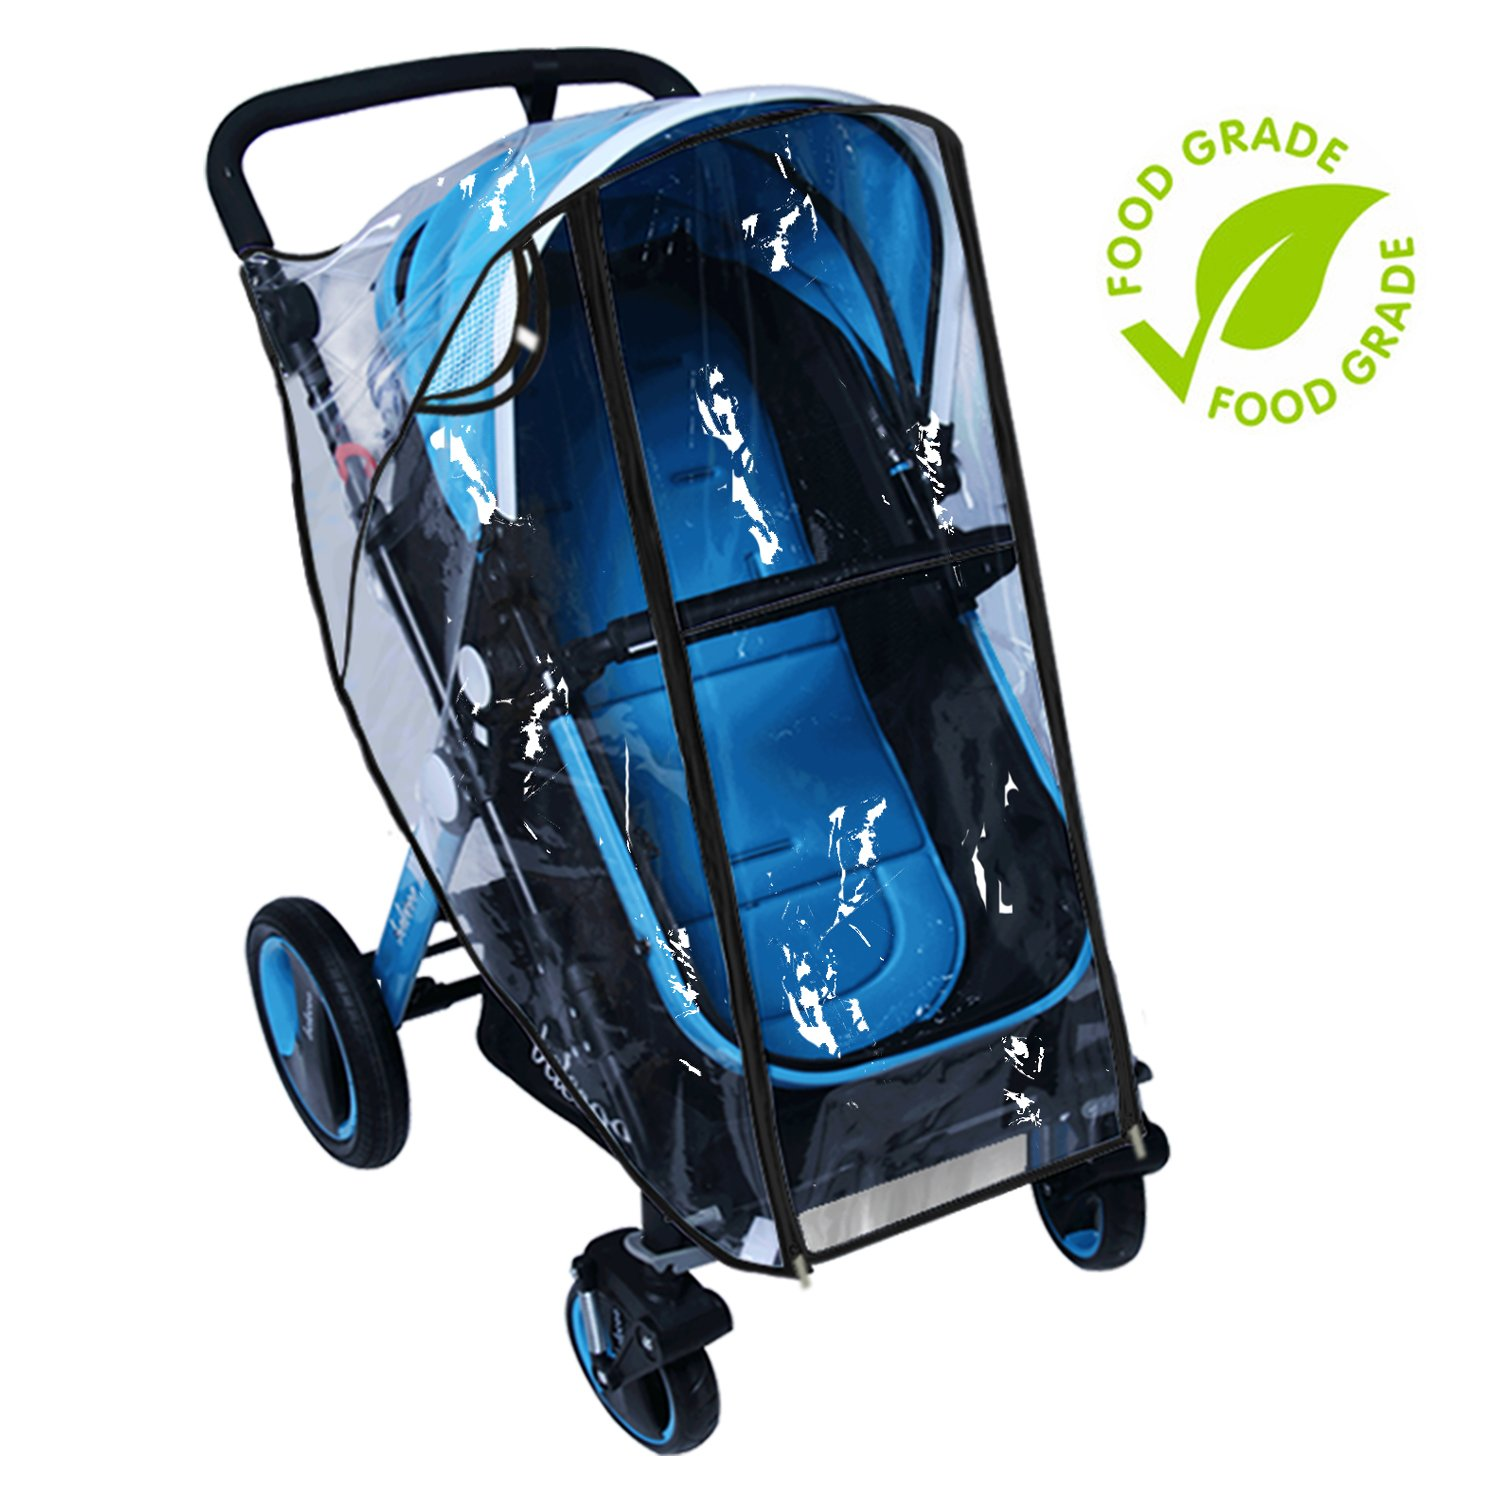 Baby Stroller Rain Cover Weather Shield Accessories Universal Size Protect from Rain Wind Snow Dust Insects Water Proof Ventilate Clear Food Grade Materia EVA Plastic Zipper Black White (black, large)